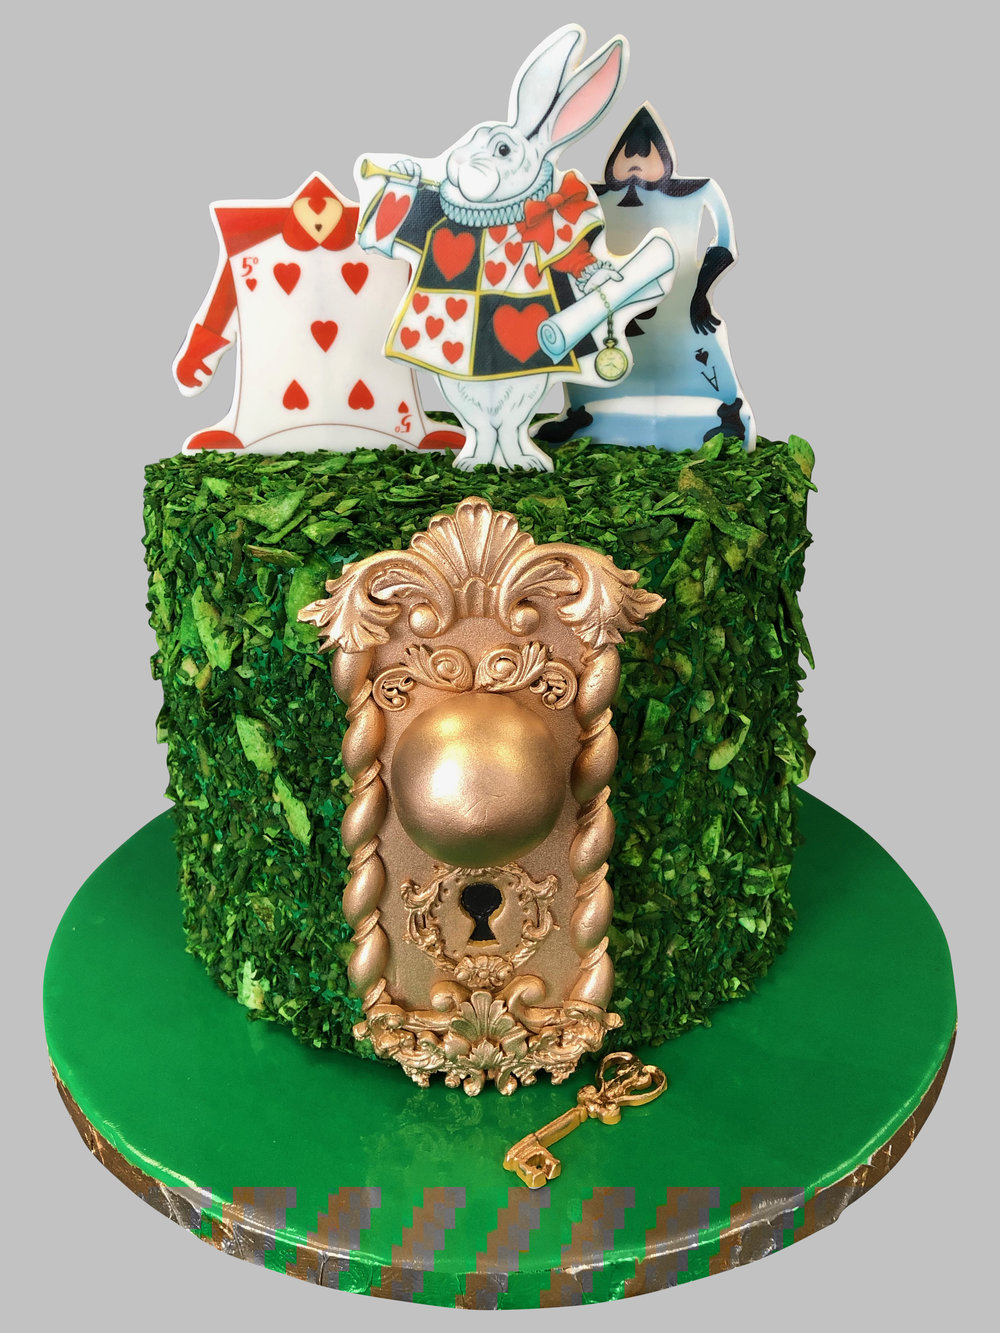 Alice In Wonderland Birthday Cake New Jersey